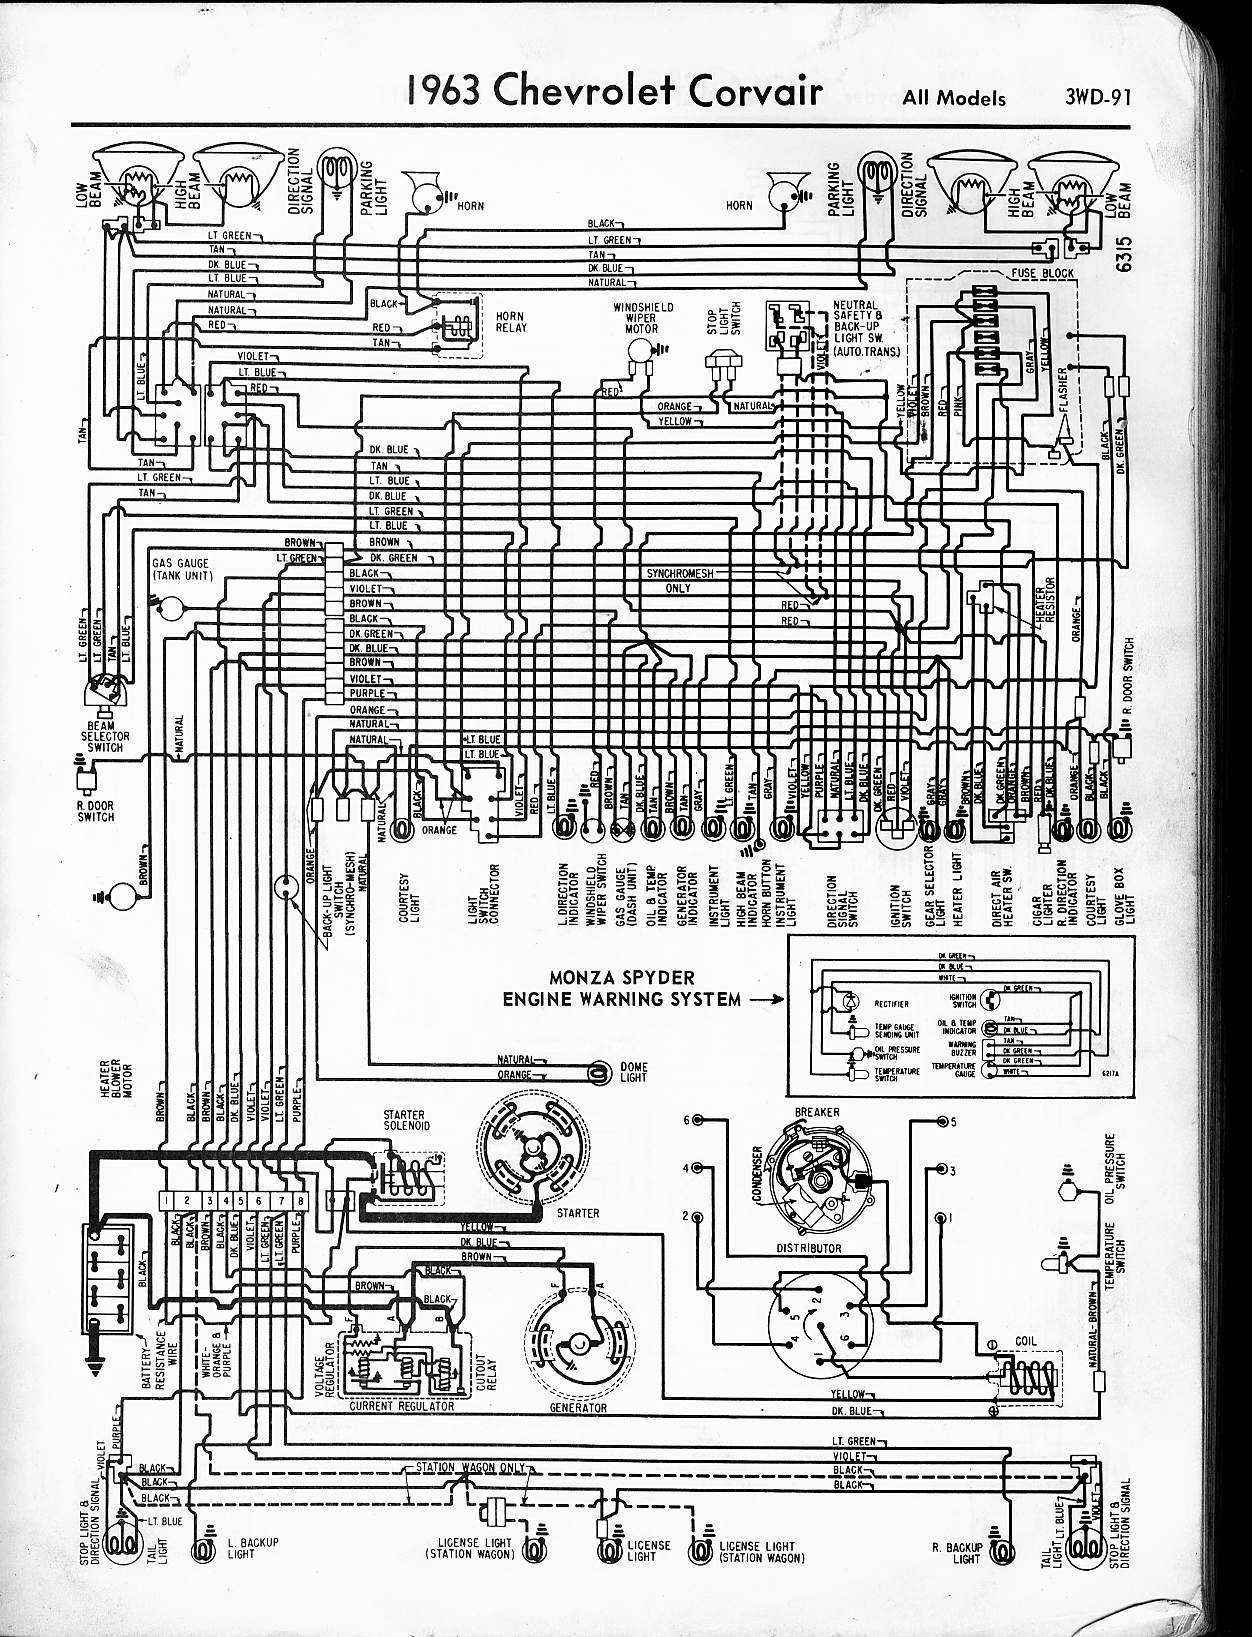 1965 c10 chevy truck starter wiring electrical diagram schematics rh zavoral genealogy com 75 Chevy Truck Wiring Diagram 75 Chevy Truck Wiring Diagram